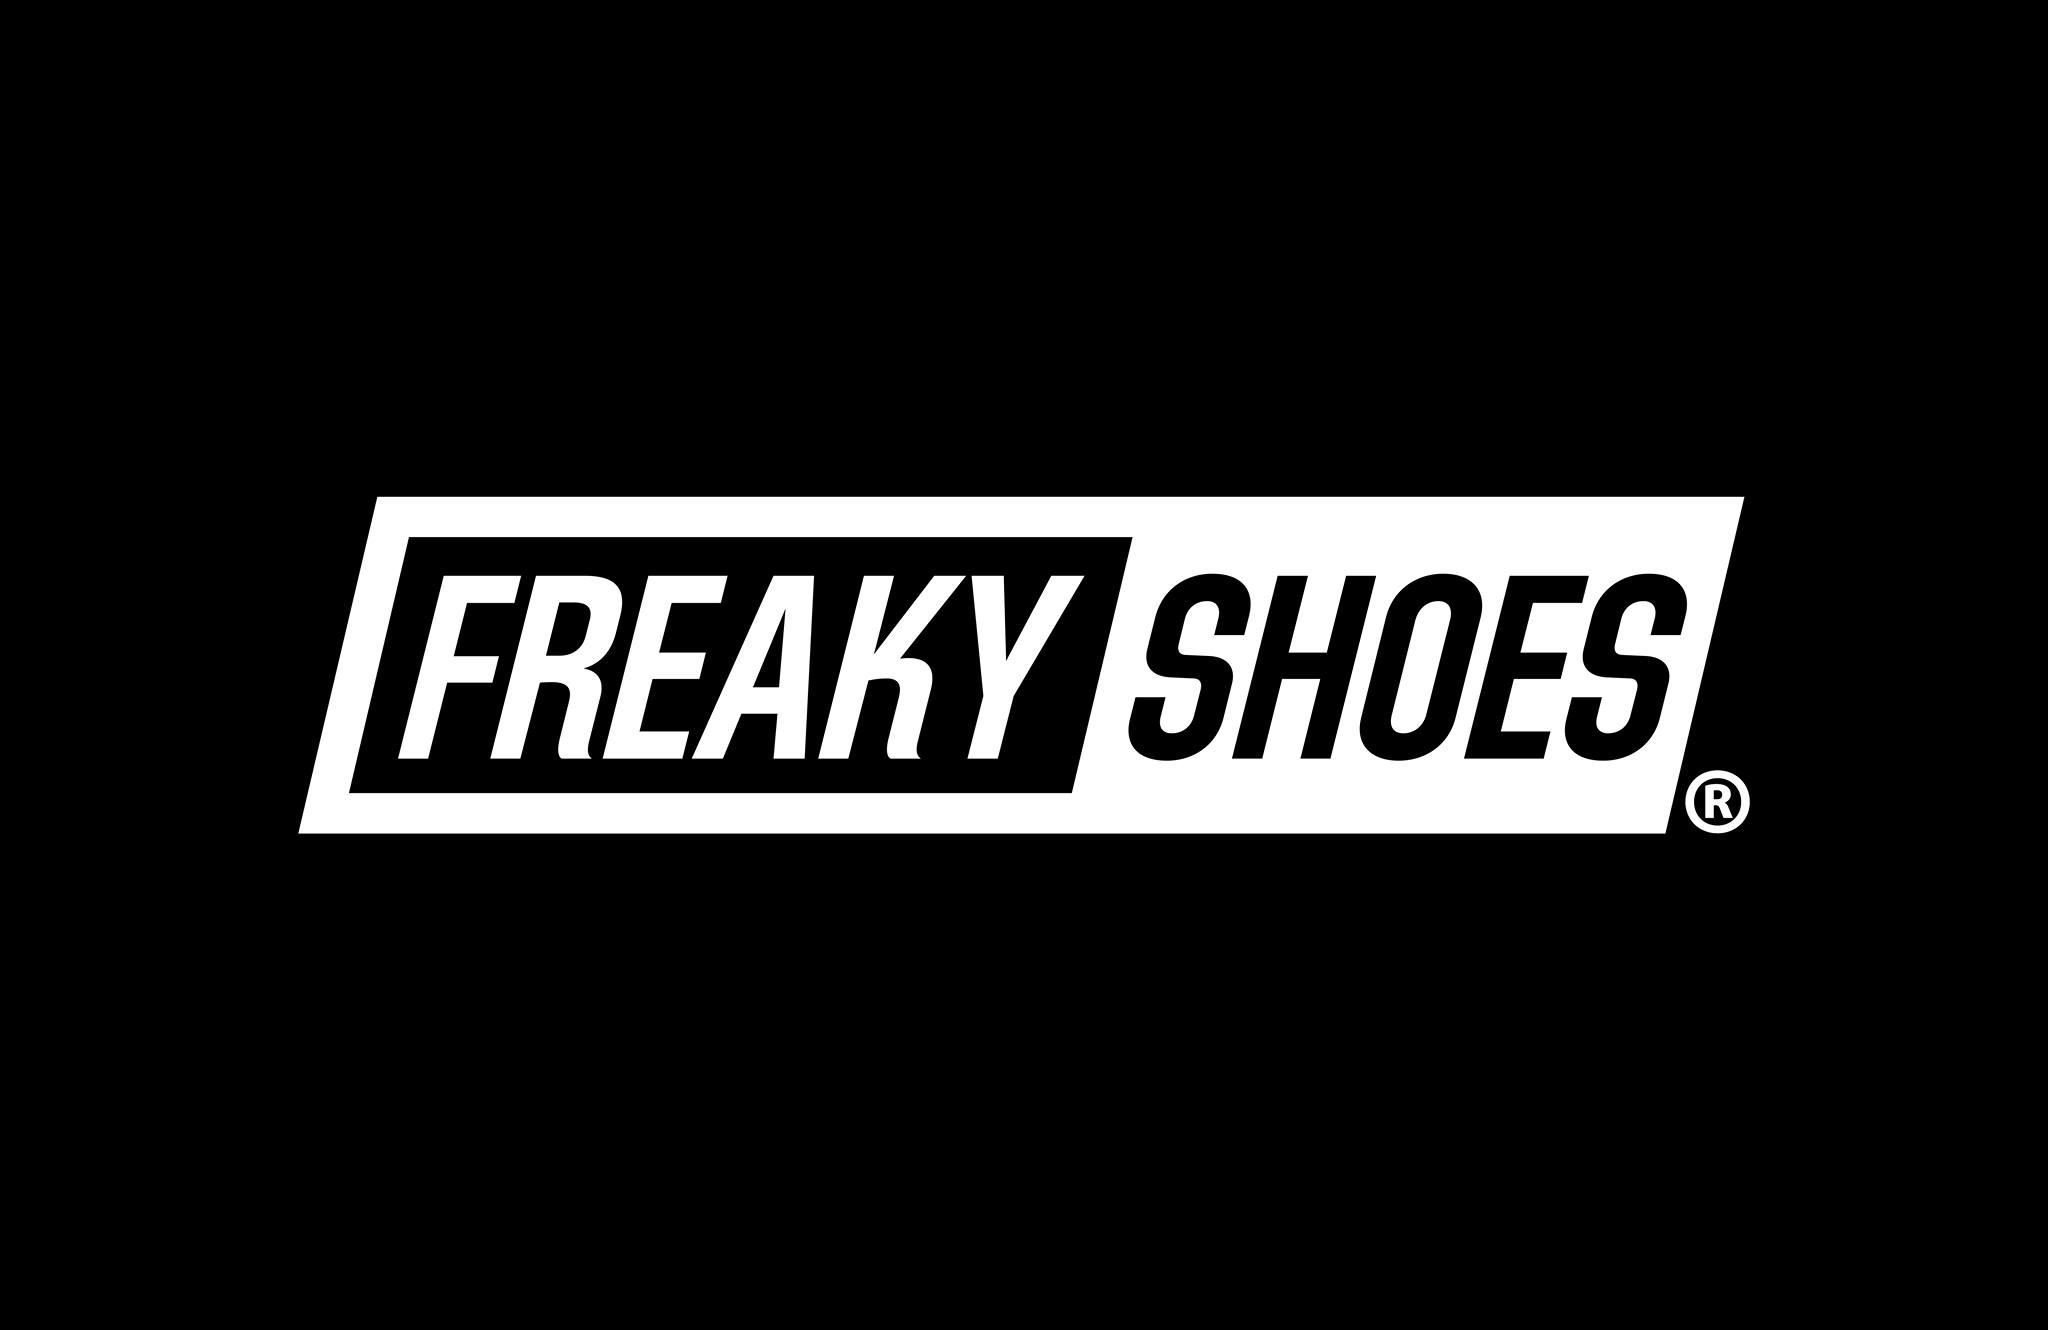 Freaky Shoes Introduces an Impressive Platform for Designing and Creating Custom-made Shoes